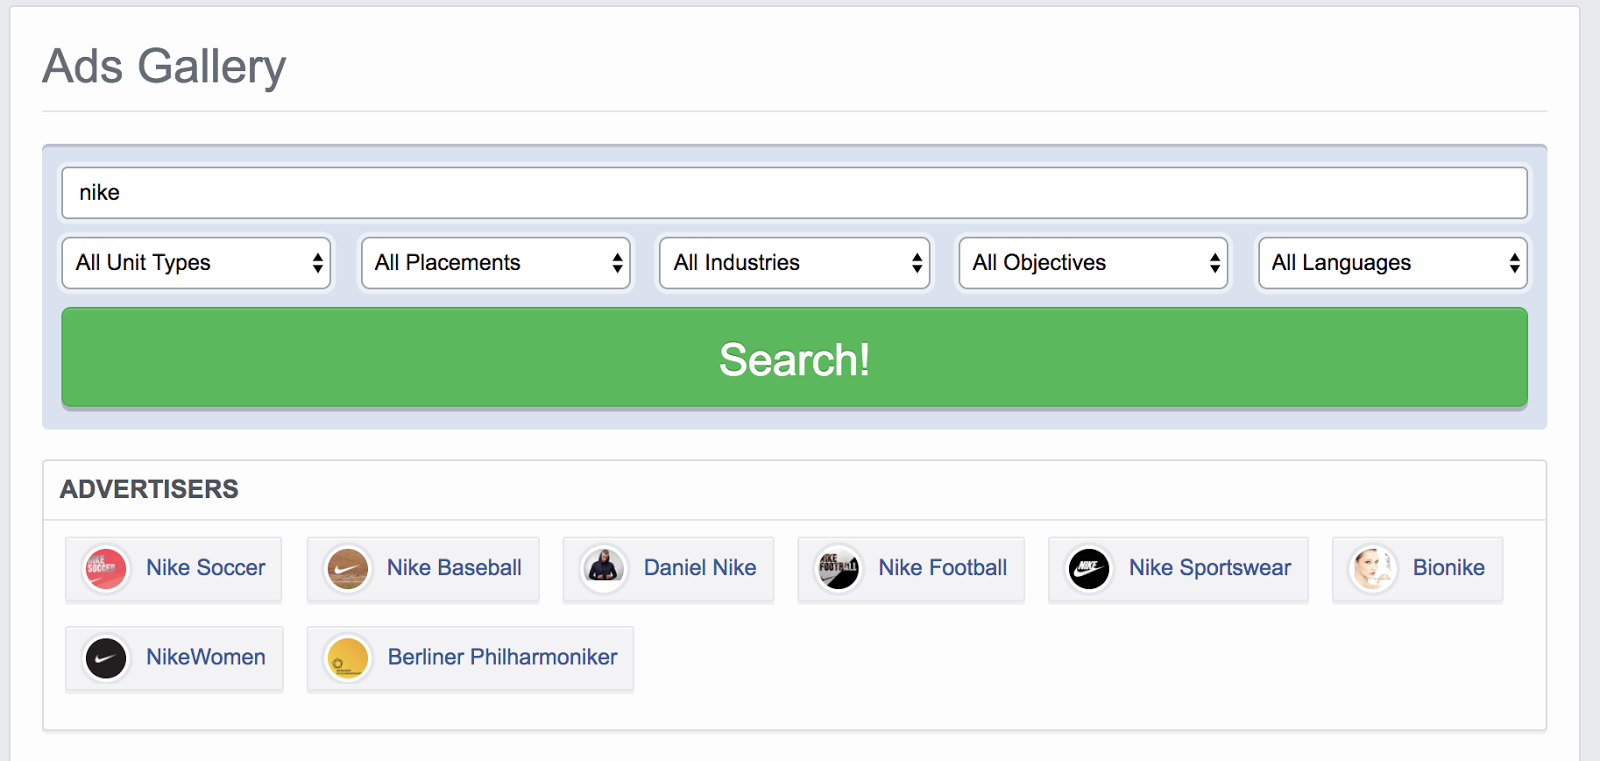 Filter the Facebook ads research results by advertisers